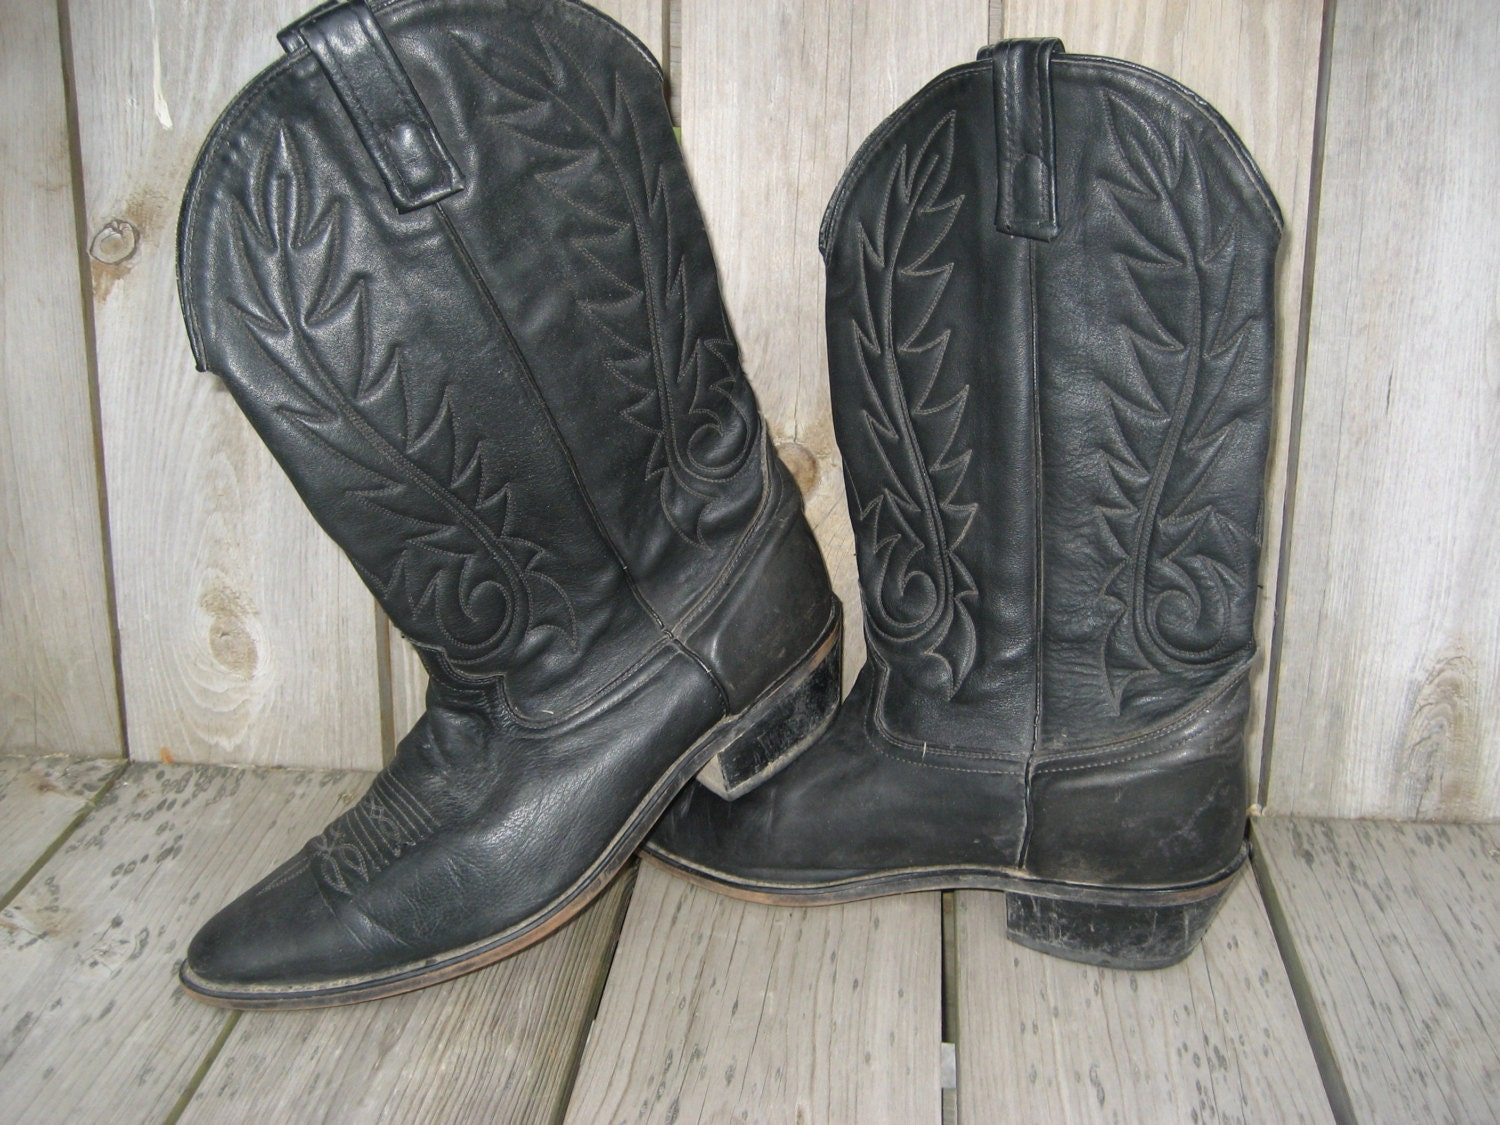 vegan faux leather black cowboy boots s size 12 by